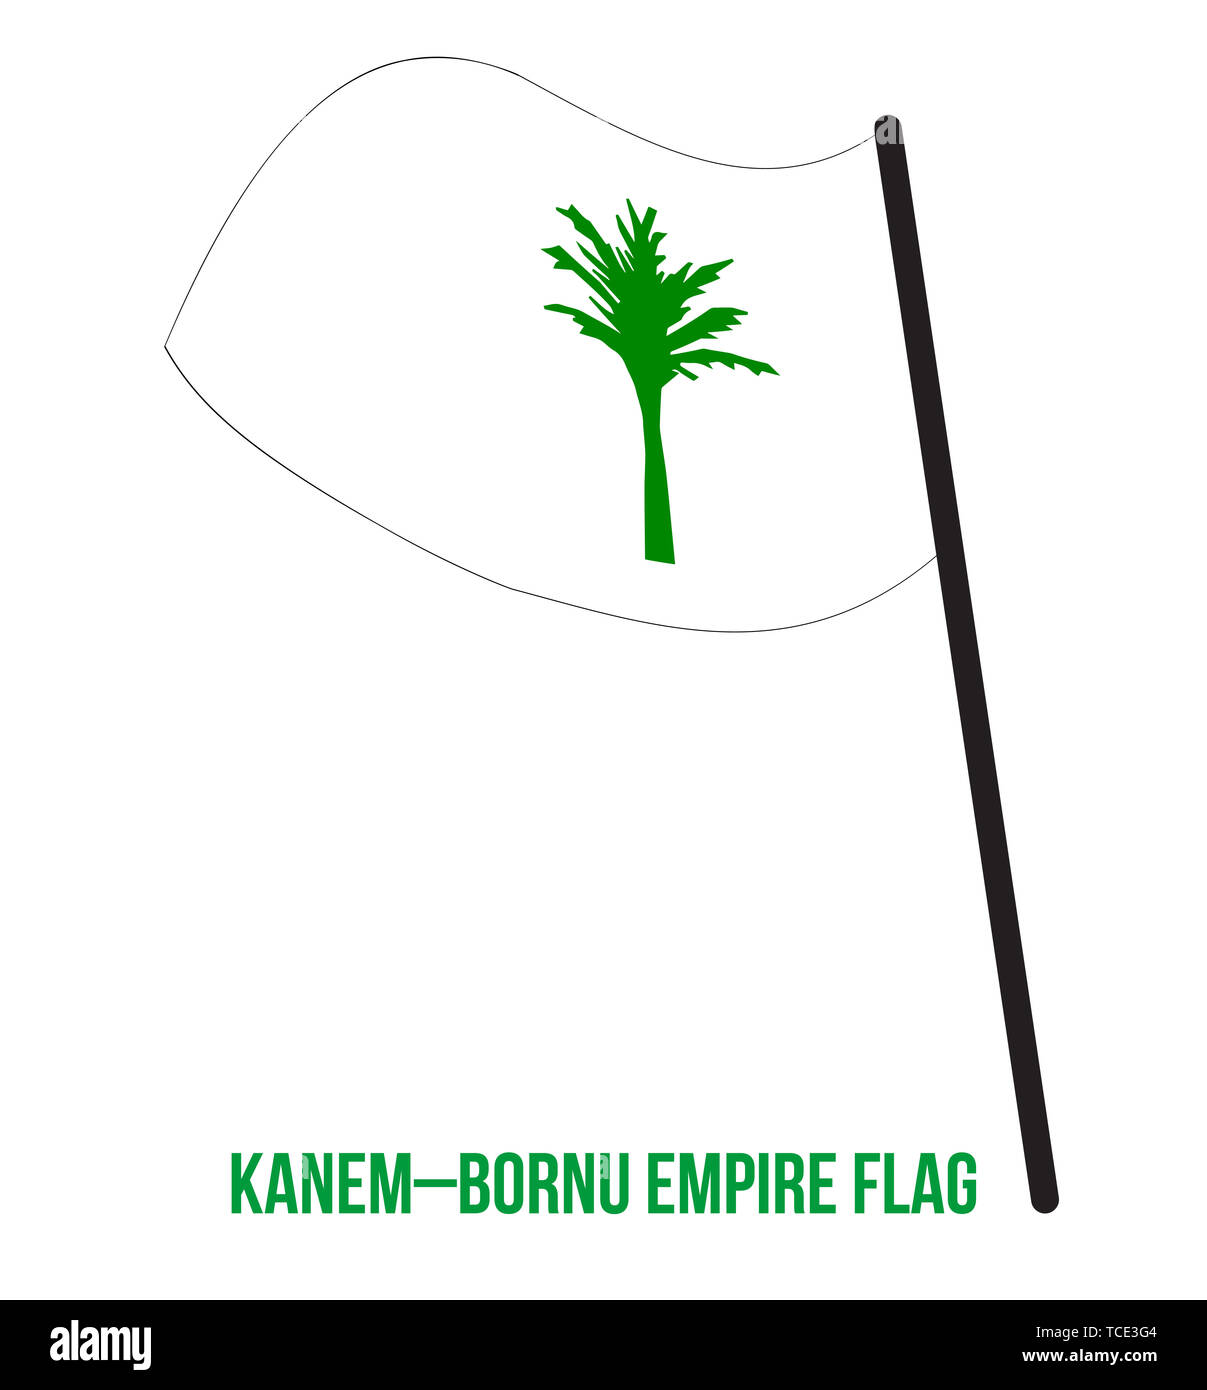 Kanem–Bornu Empire (c.700-1893) Flag Waving Vector Illustration on White Background. The Kanem–Bornu Empire was an empire that existed in modern Chad  - Stock Image